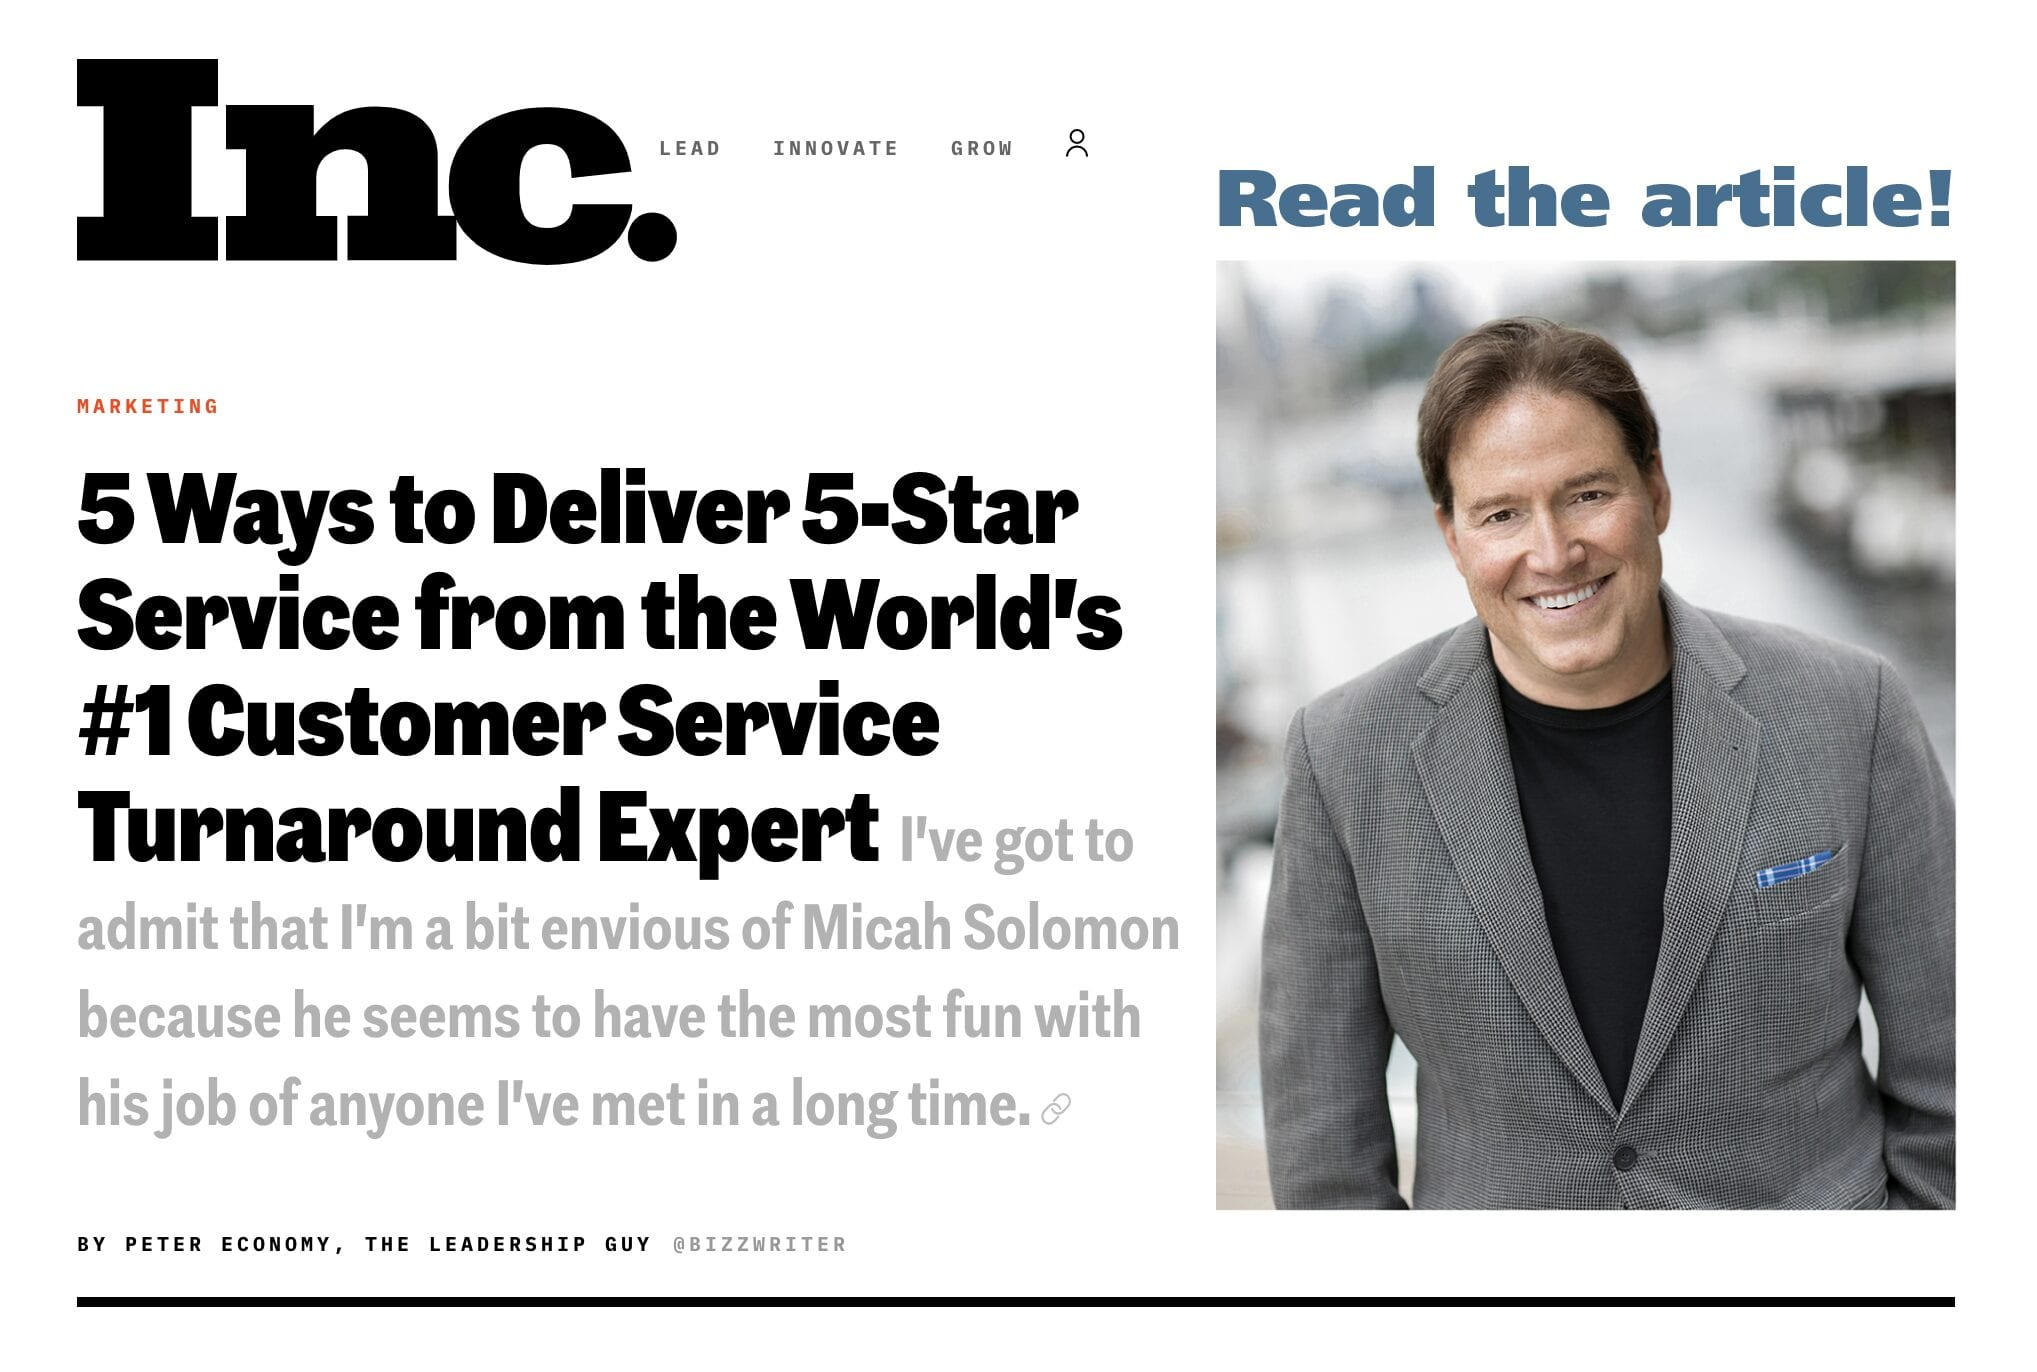 Inc Article: five ways to deliver 5 star service from the world's #1 customer service turnaround expert